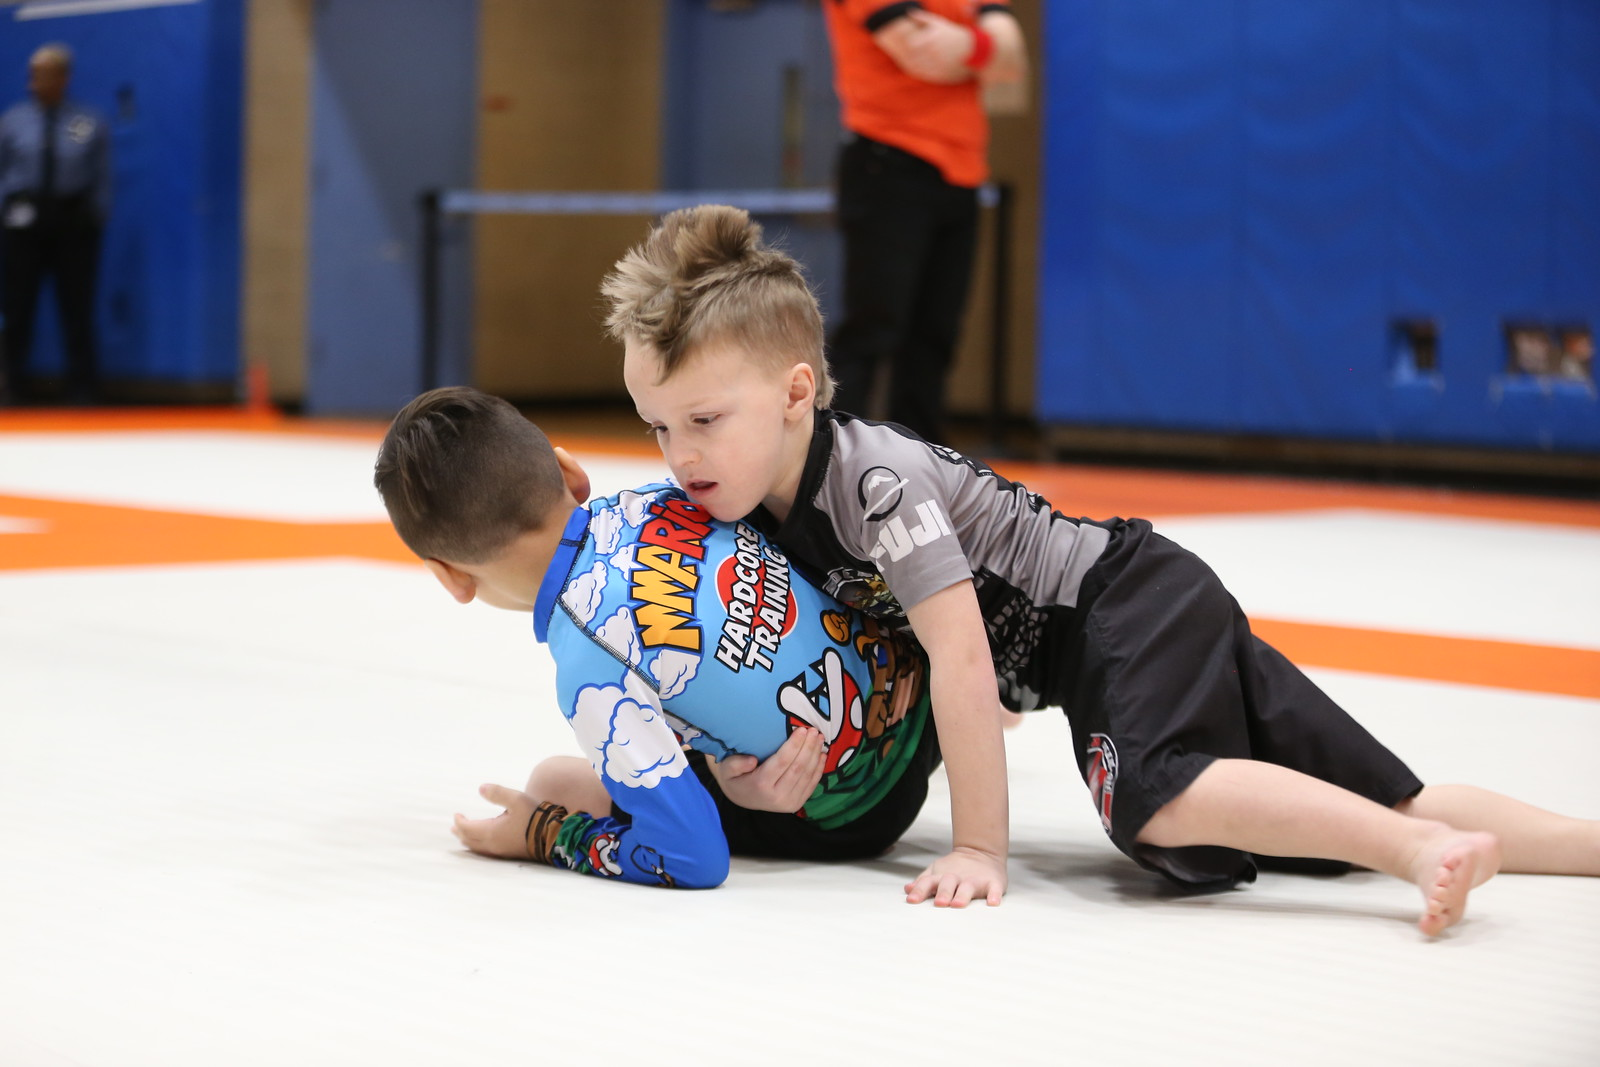 Grappling Industries NYC Tournament Pictures! - SocaBJJ